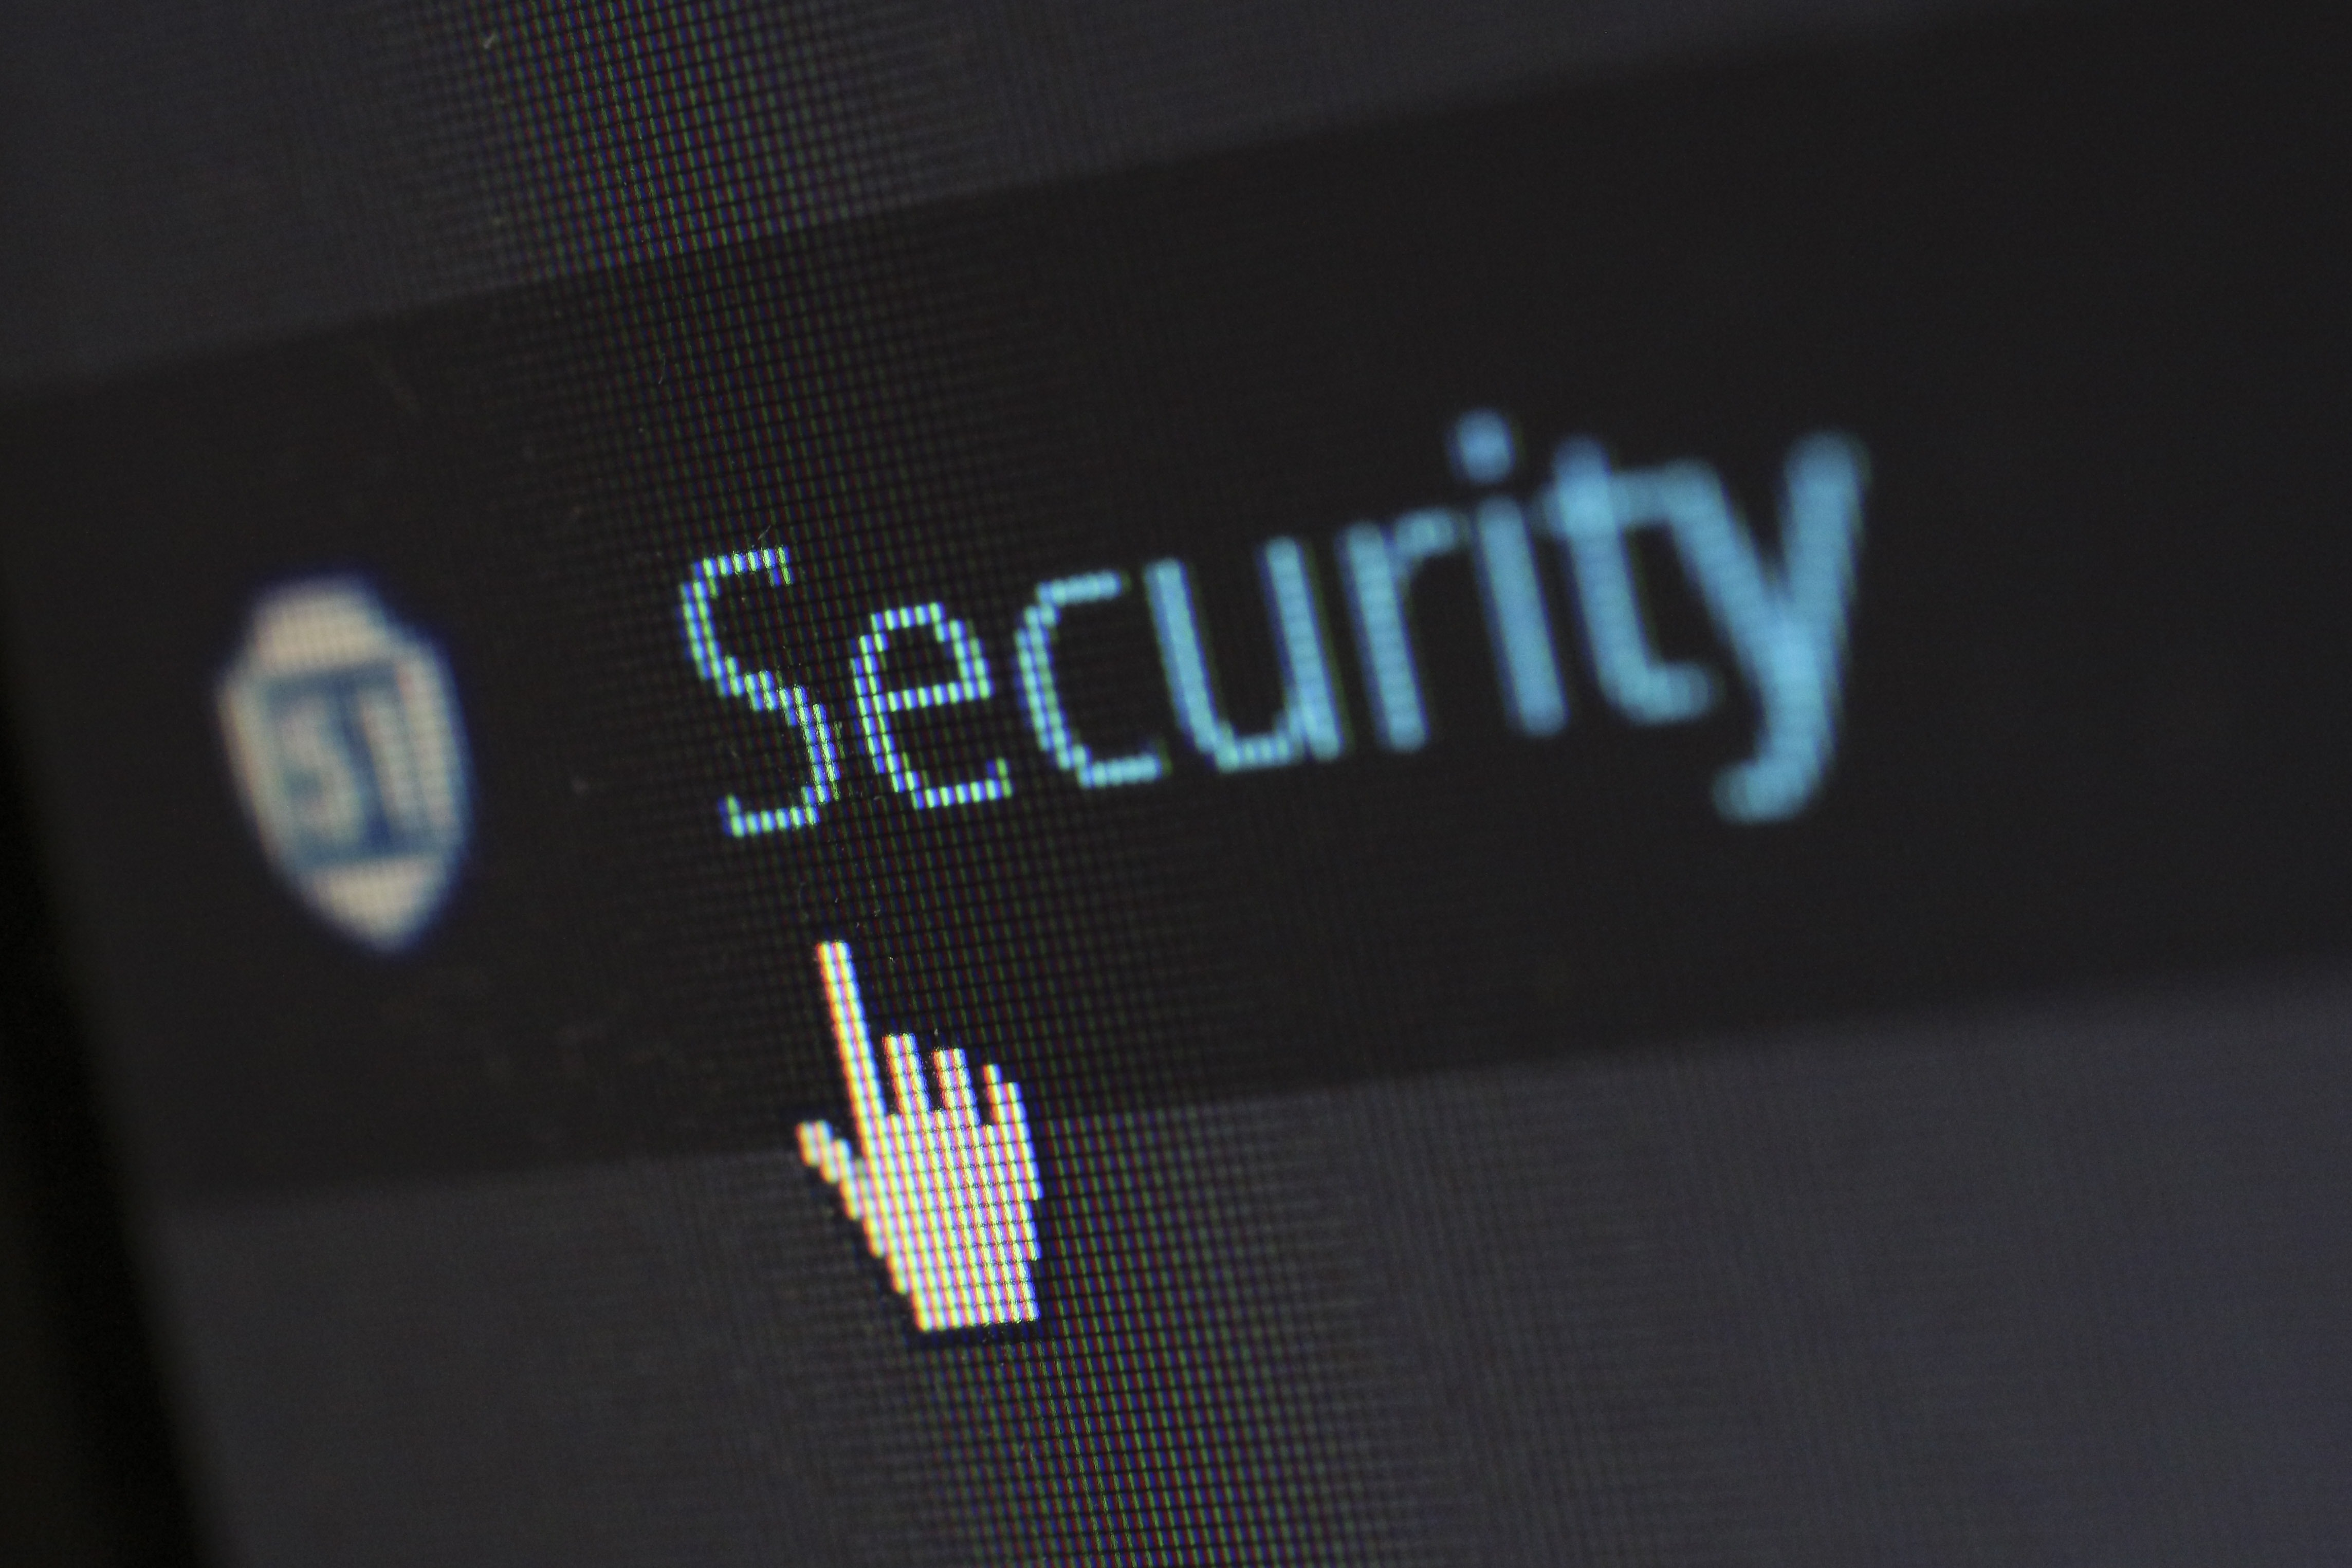 Managed Security - Au Technology Solutions